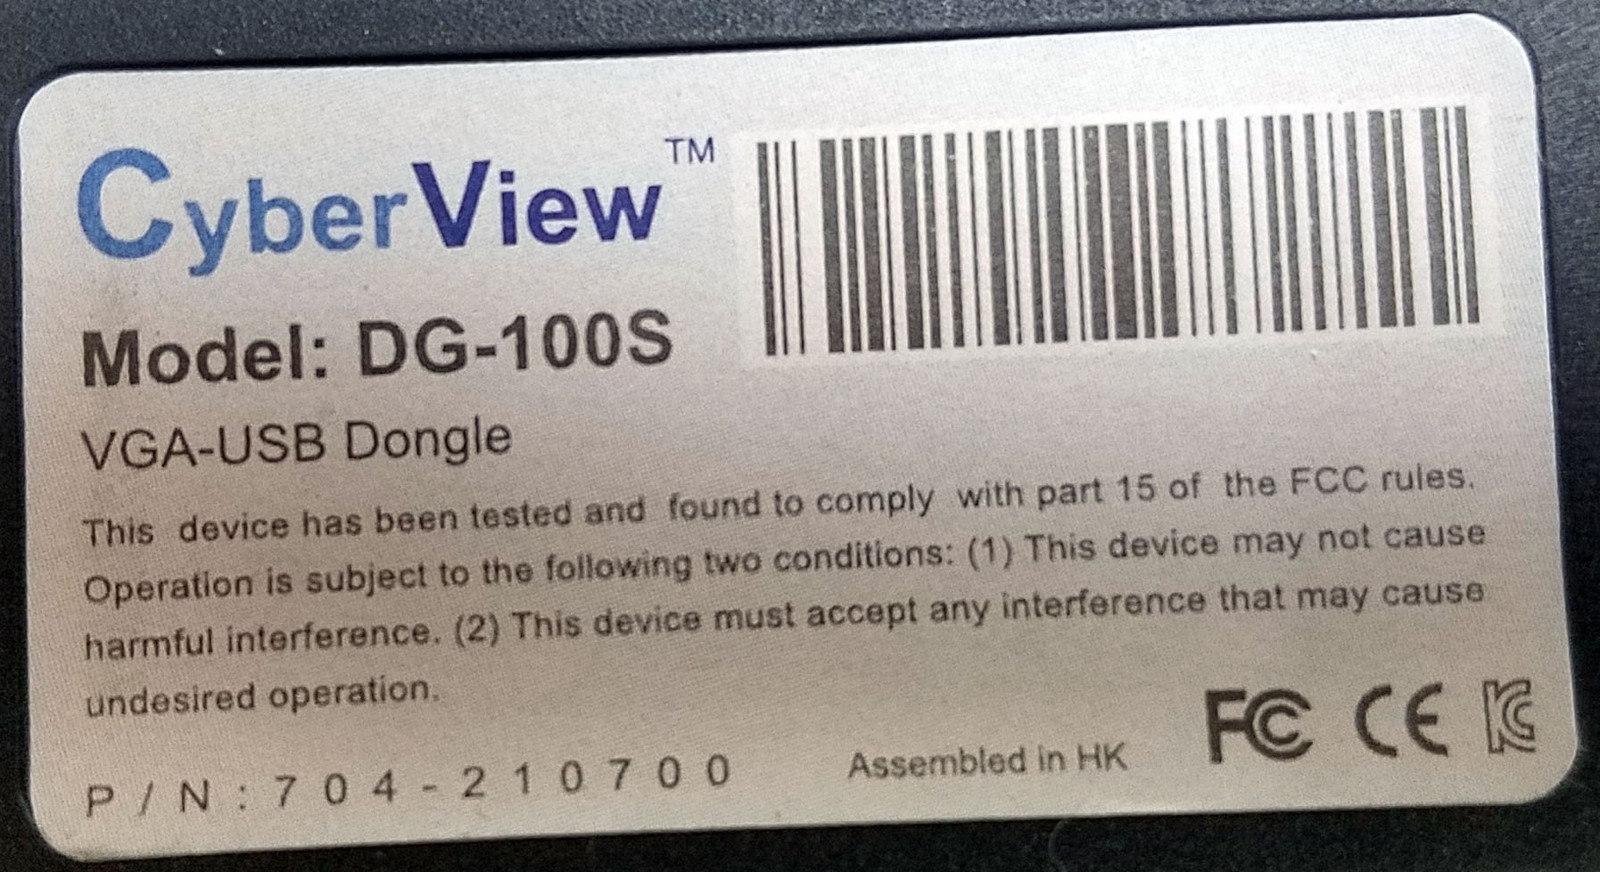 DG-100S Cyberview VGA USB Dongle for Cat5/Cat6 KVM Switcher